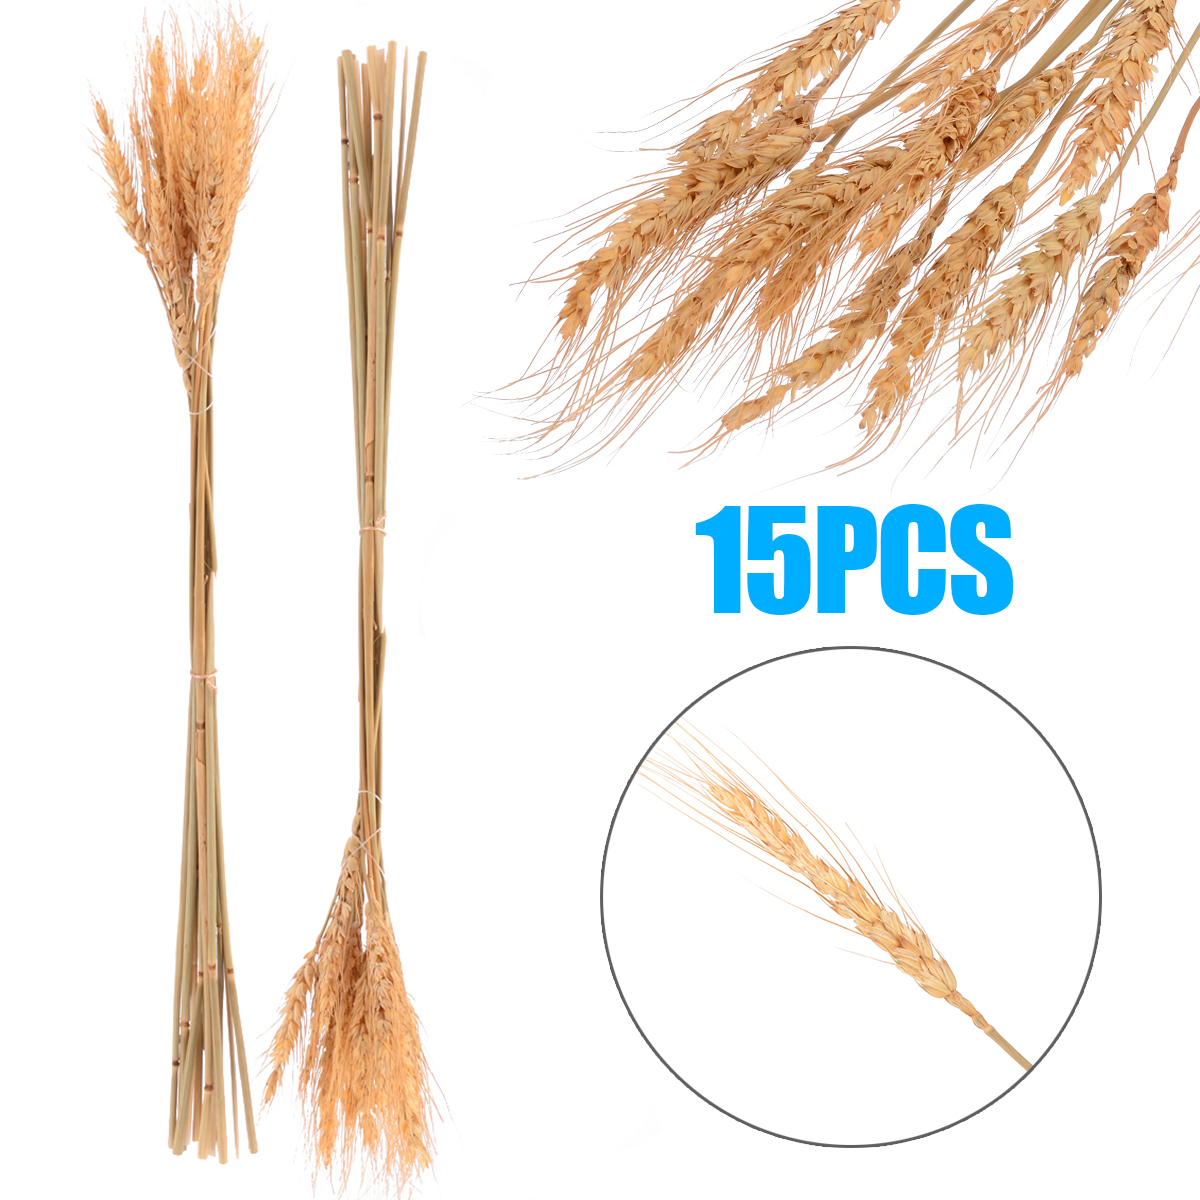 15pcs 1 branch of Wheat Dried Wheat Bouquet Photo Taking Prop Wedding Party Home Decoration Plant